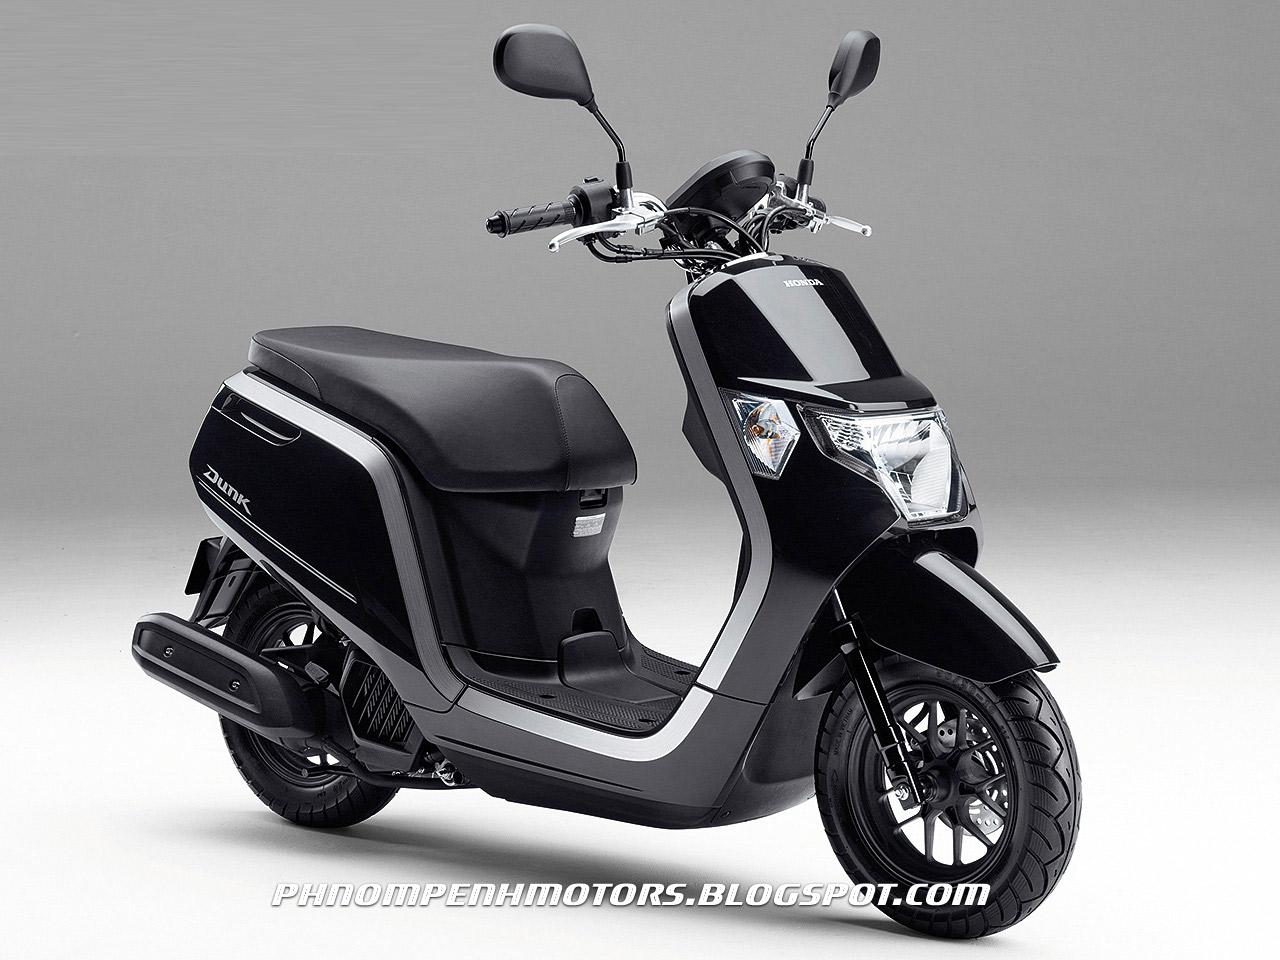 honda dunk 50cc coming soon price 1850 phnom penh motors. Black Bedroom Furniture Sets. Home Design Ideas